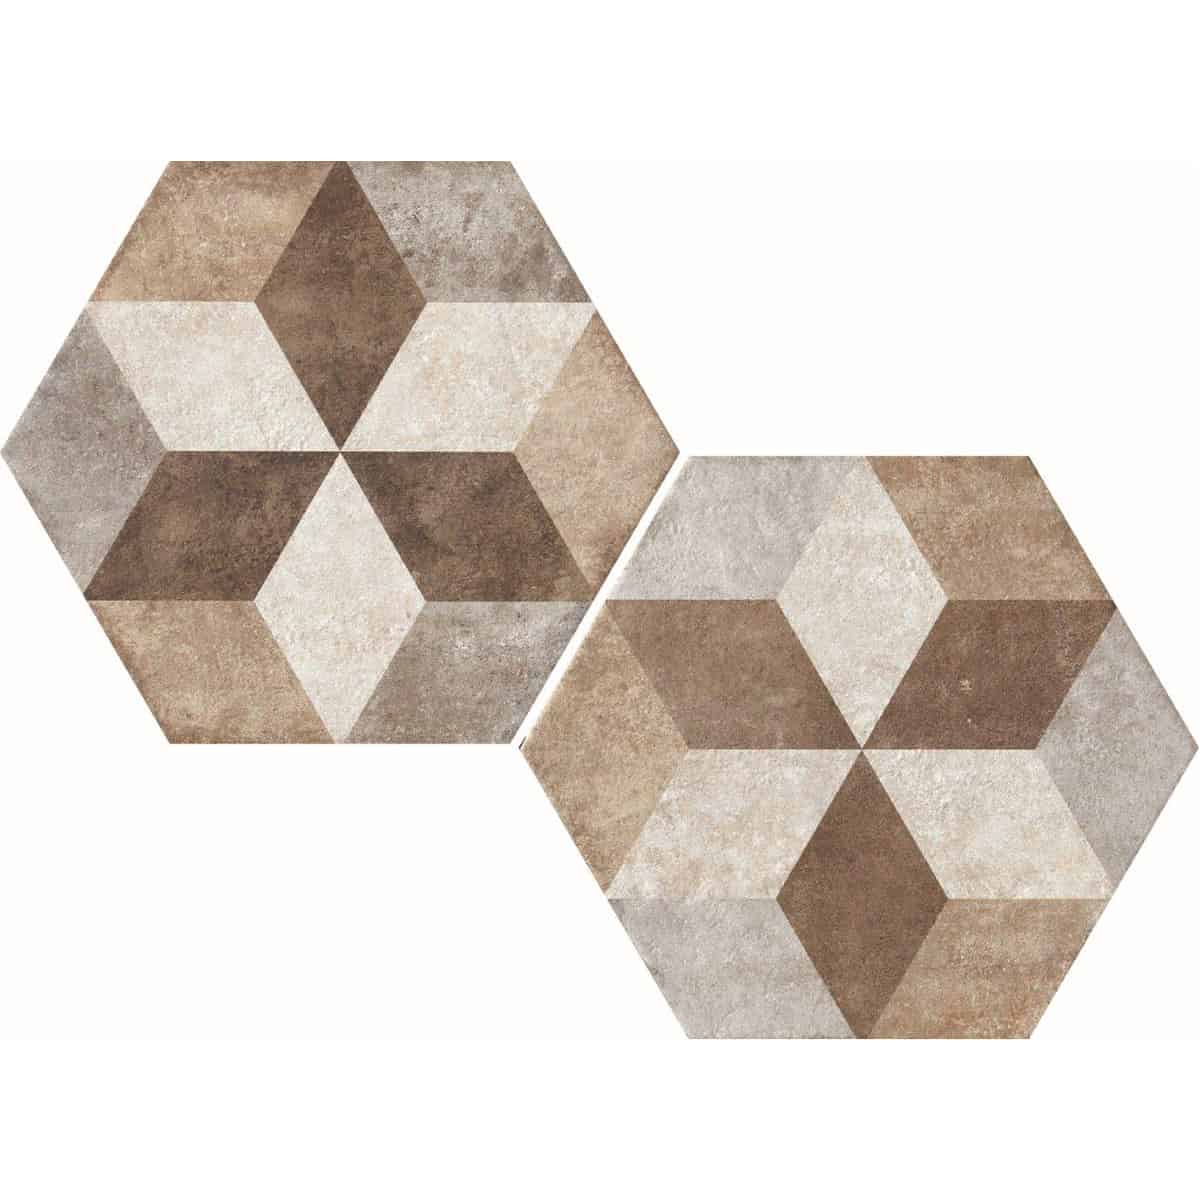 large format  pattern hexagon tile 345x400mm Deco Heritage texture 4 by Decobella tiles - South Africa Big format porcelain tiles from Italy and with up to 100 shades, this tile is ideal when considering a pattern hex tile with an authentic feel. Enjoy the quility of porcelain with great anti-slip properties but the look of clay or cement.